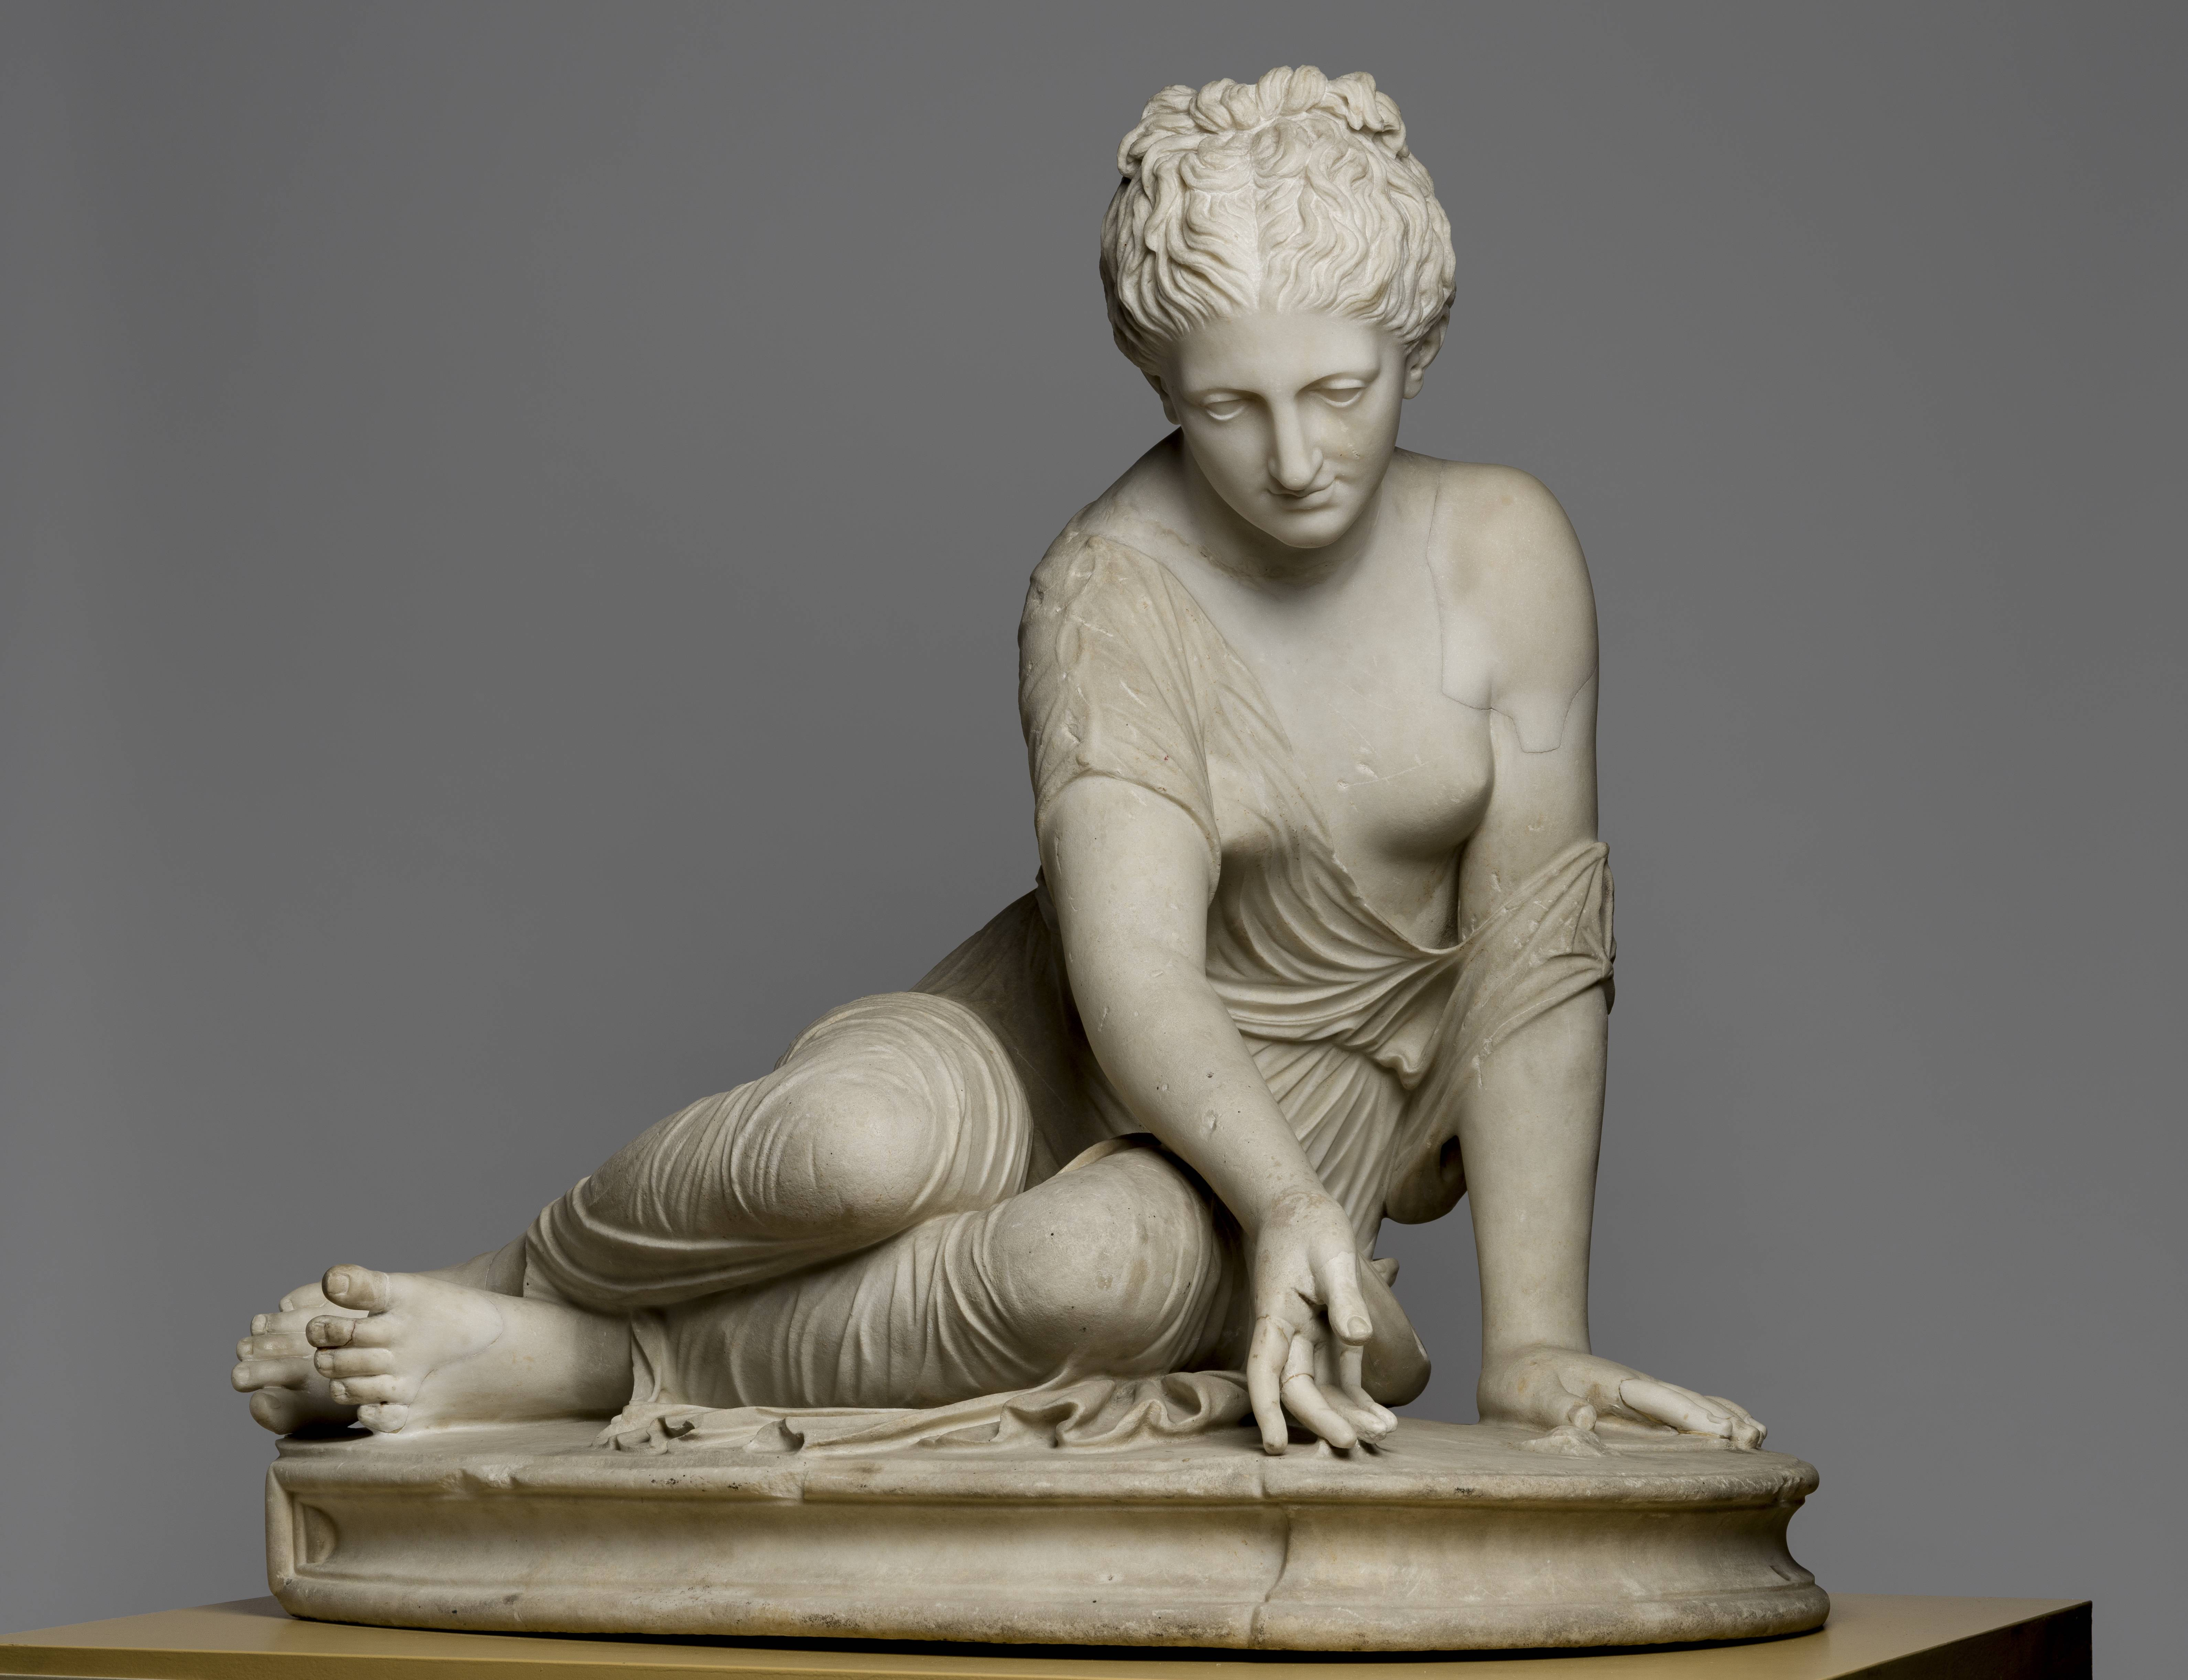 Fig. 8 The Knuckle Bones Player (a nymph from the train of Artemis/Diana), Roman copy of a lost original from the High Hellenistic period, marble, 68.5 × 70 × 47.4cm, found in the Vigna Verospi on the Pincian Hill in Rome in 1765, additions by Bartolomeo Cavaceppi, HRH Ernst August, Hereditary Prince of Hanover, Duke of Brunswick and Lüneburg